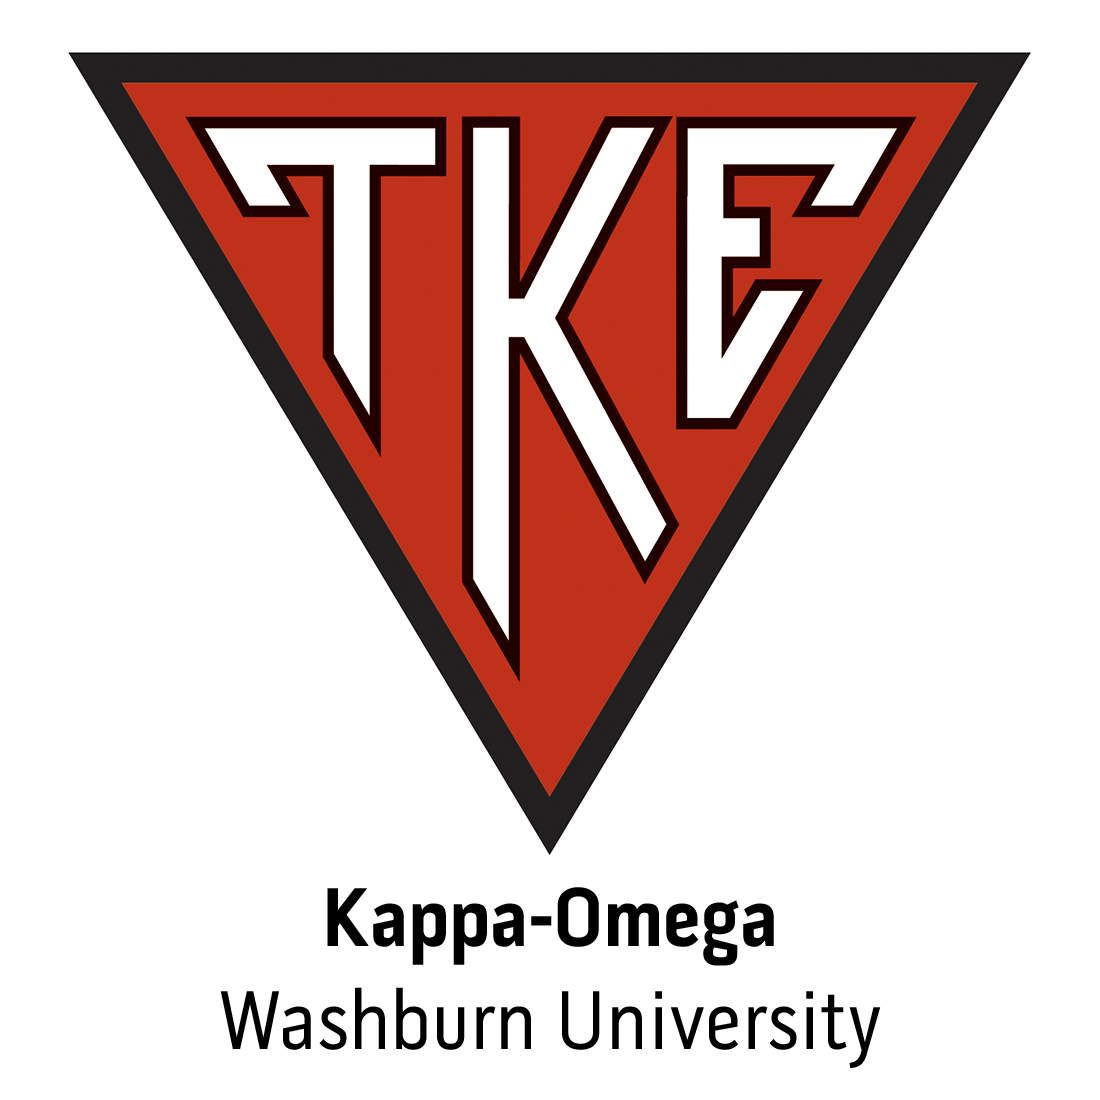 Kappa-Omega Chapter at Washburn University